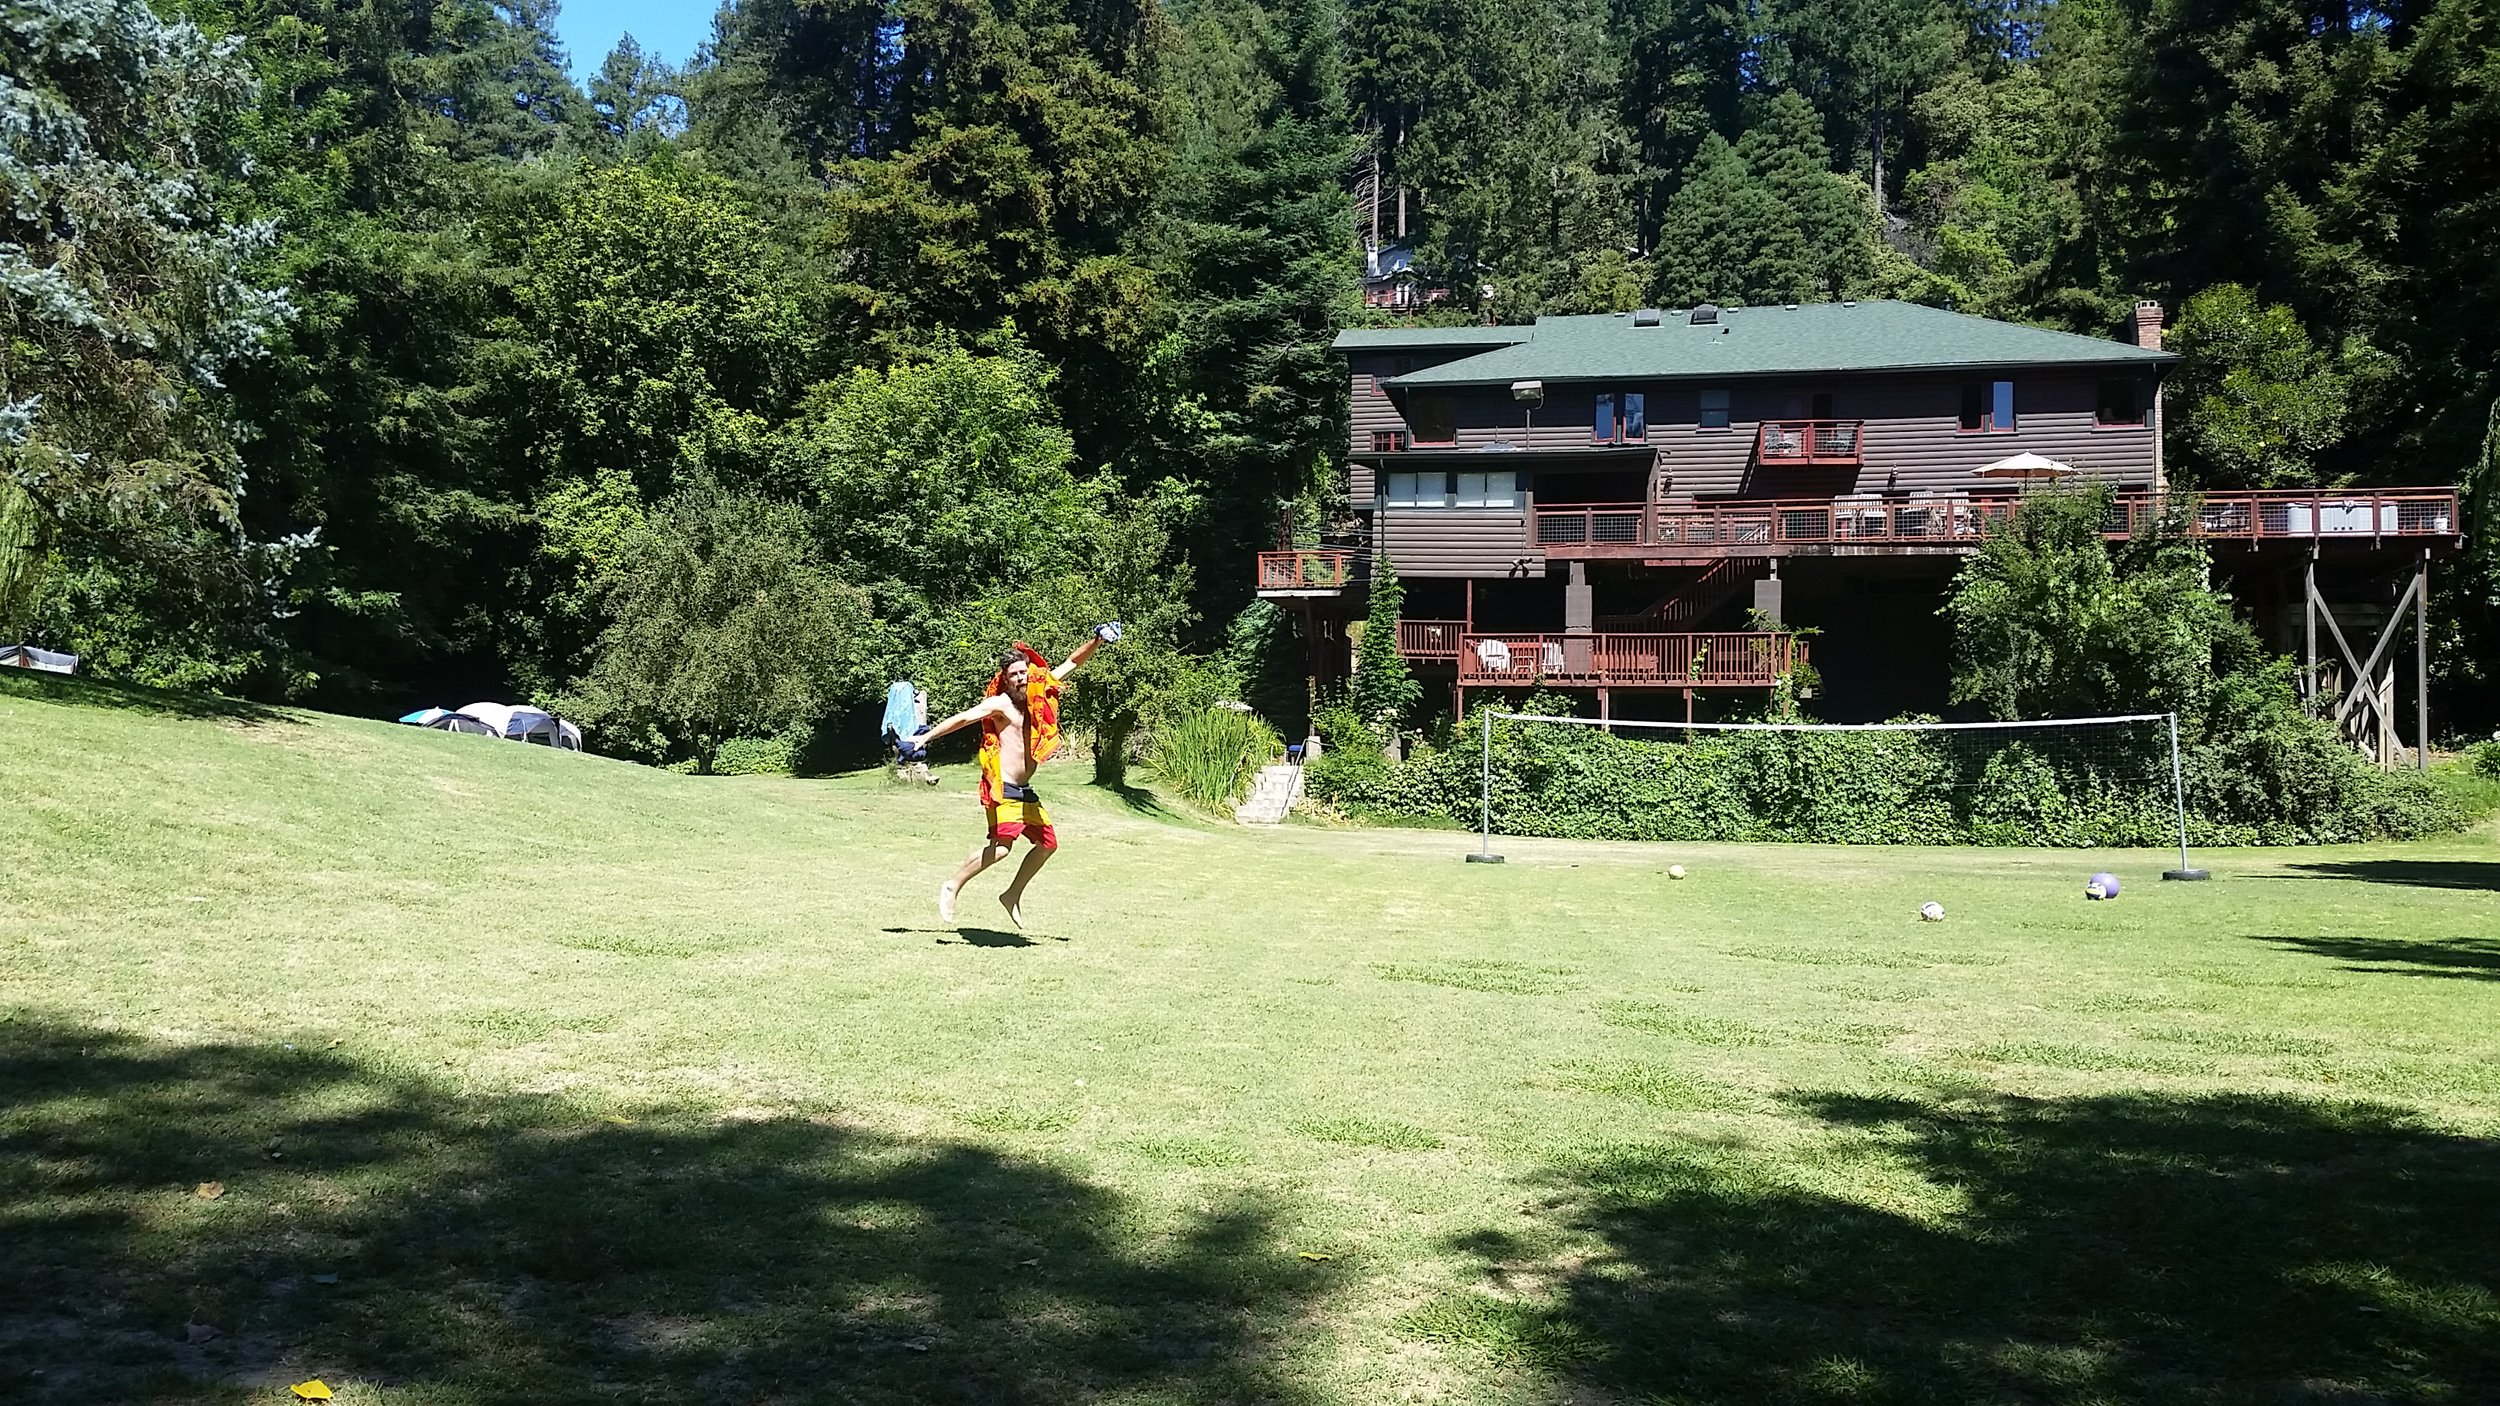 An excited Erik on the glorious lawn of Guerneville Lodge.